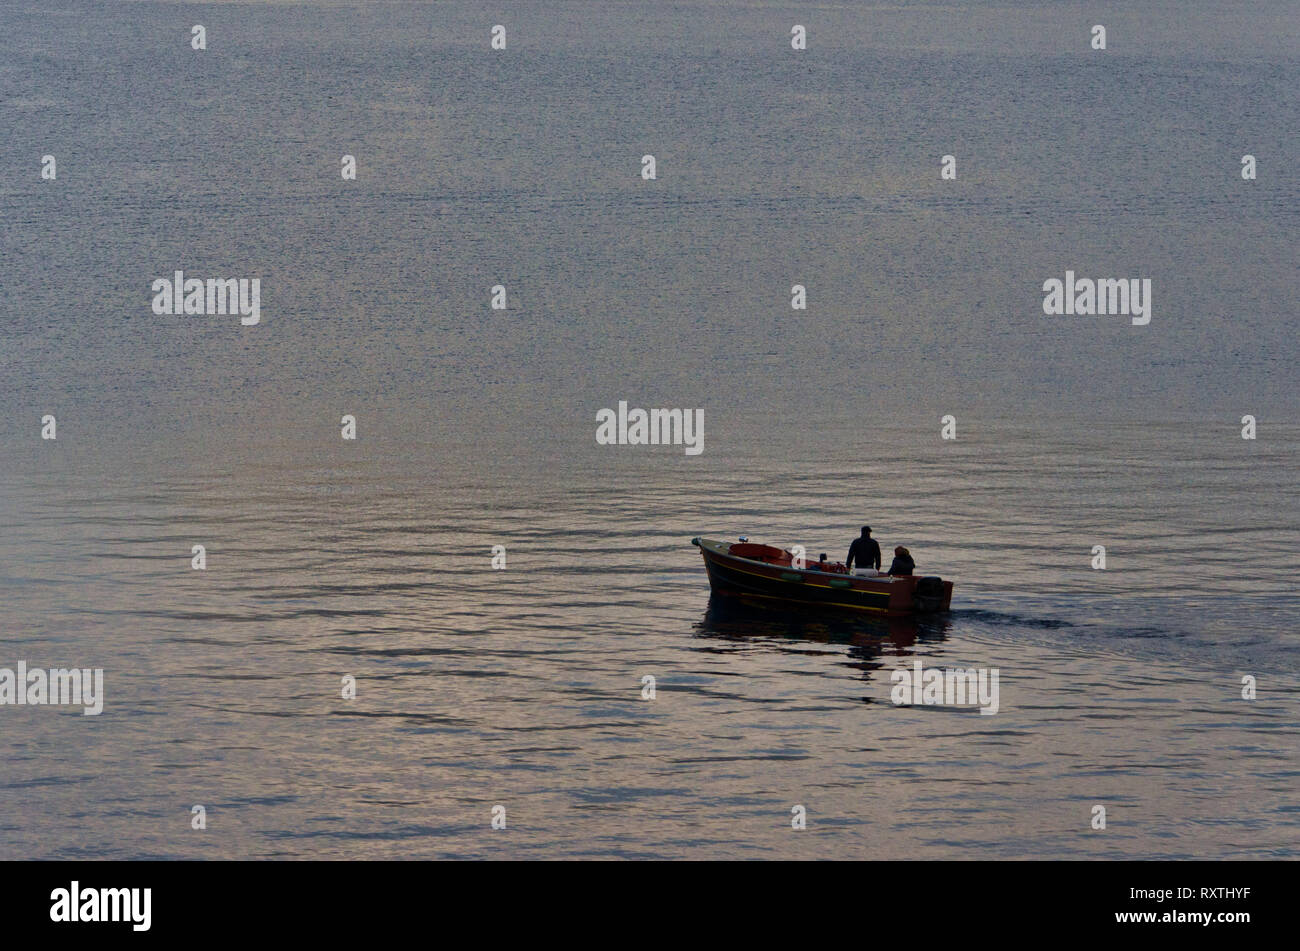 Little boat with two fishermen on the lake at down, light reflection on the water, rough water surface, tranquil scene from Lake Iseo in Italy - Stock Image